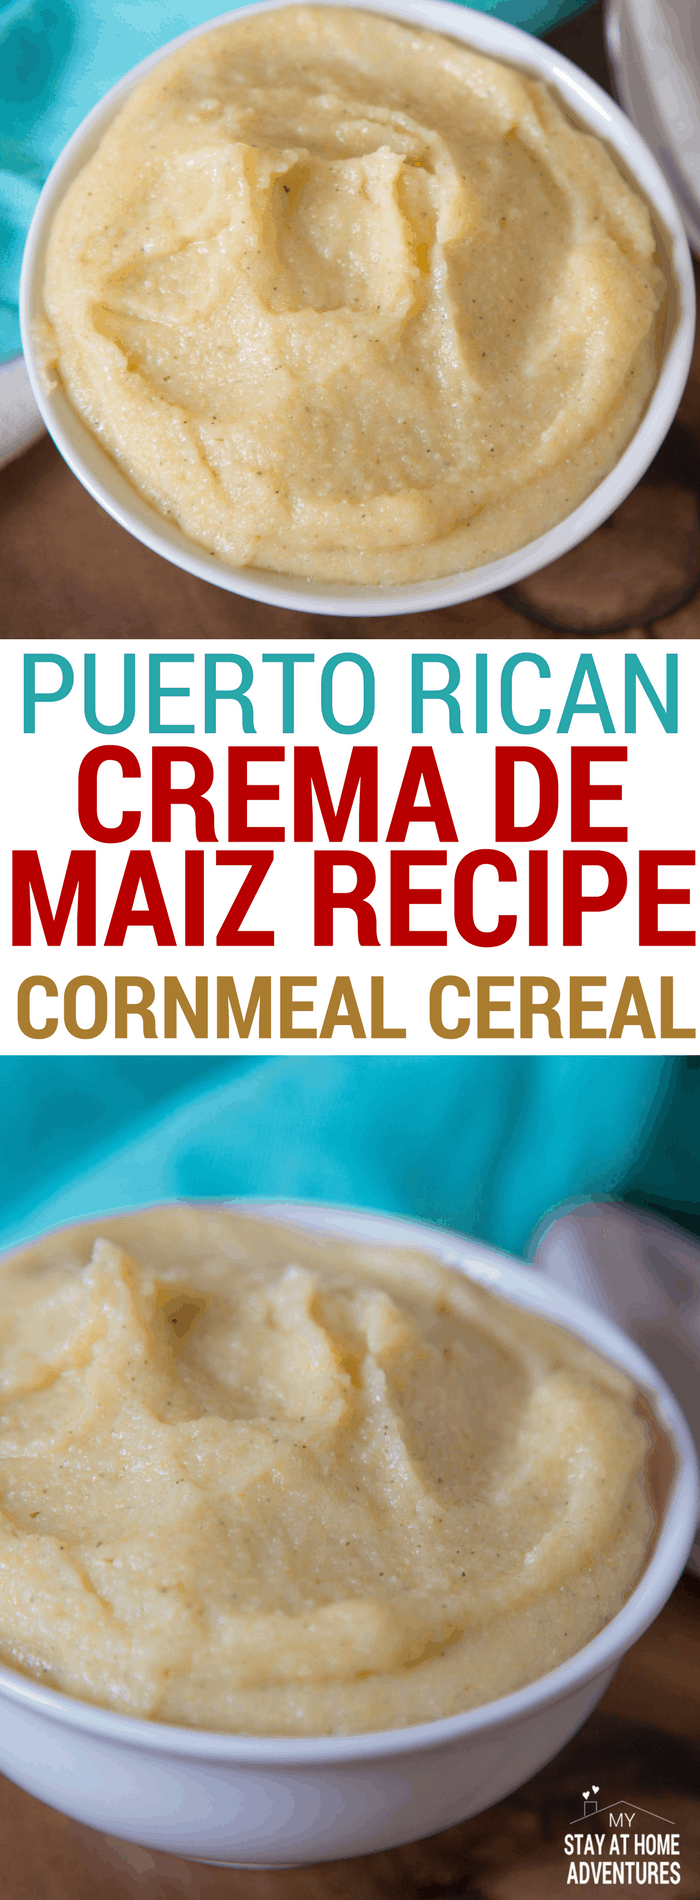 When it comes to Puerto Rican breakfast, Crema de Maiz is one of my favorite childhood cornmeal cereal recipes. Learn how you can make this delicious recipe that you and your family are going to love.